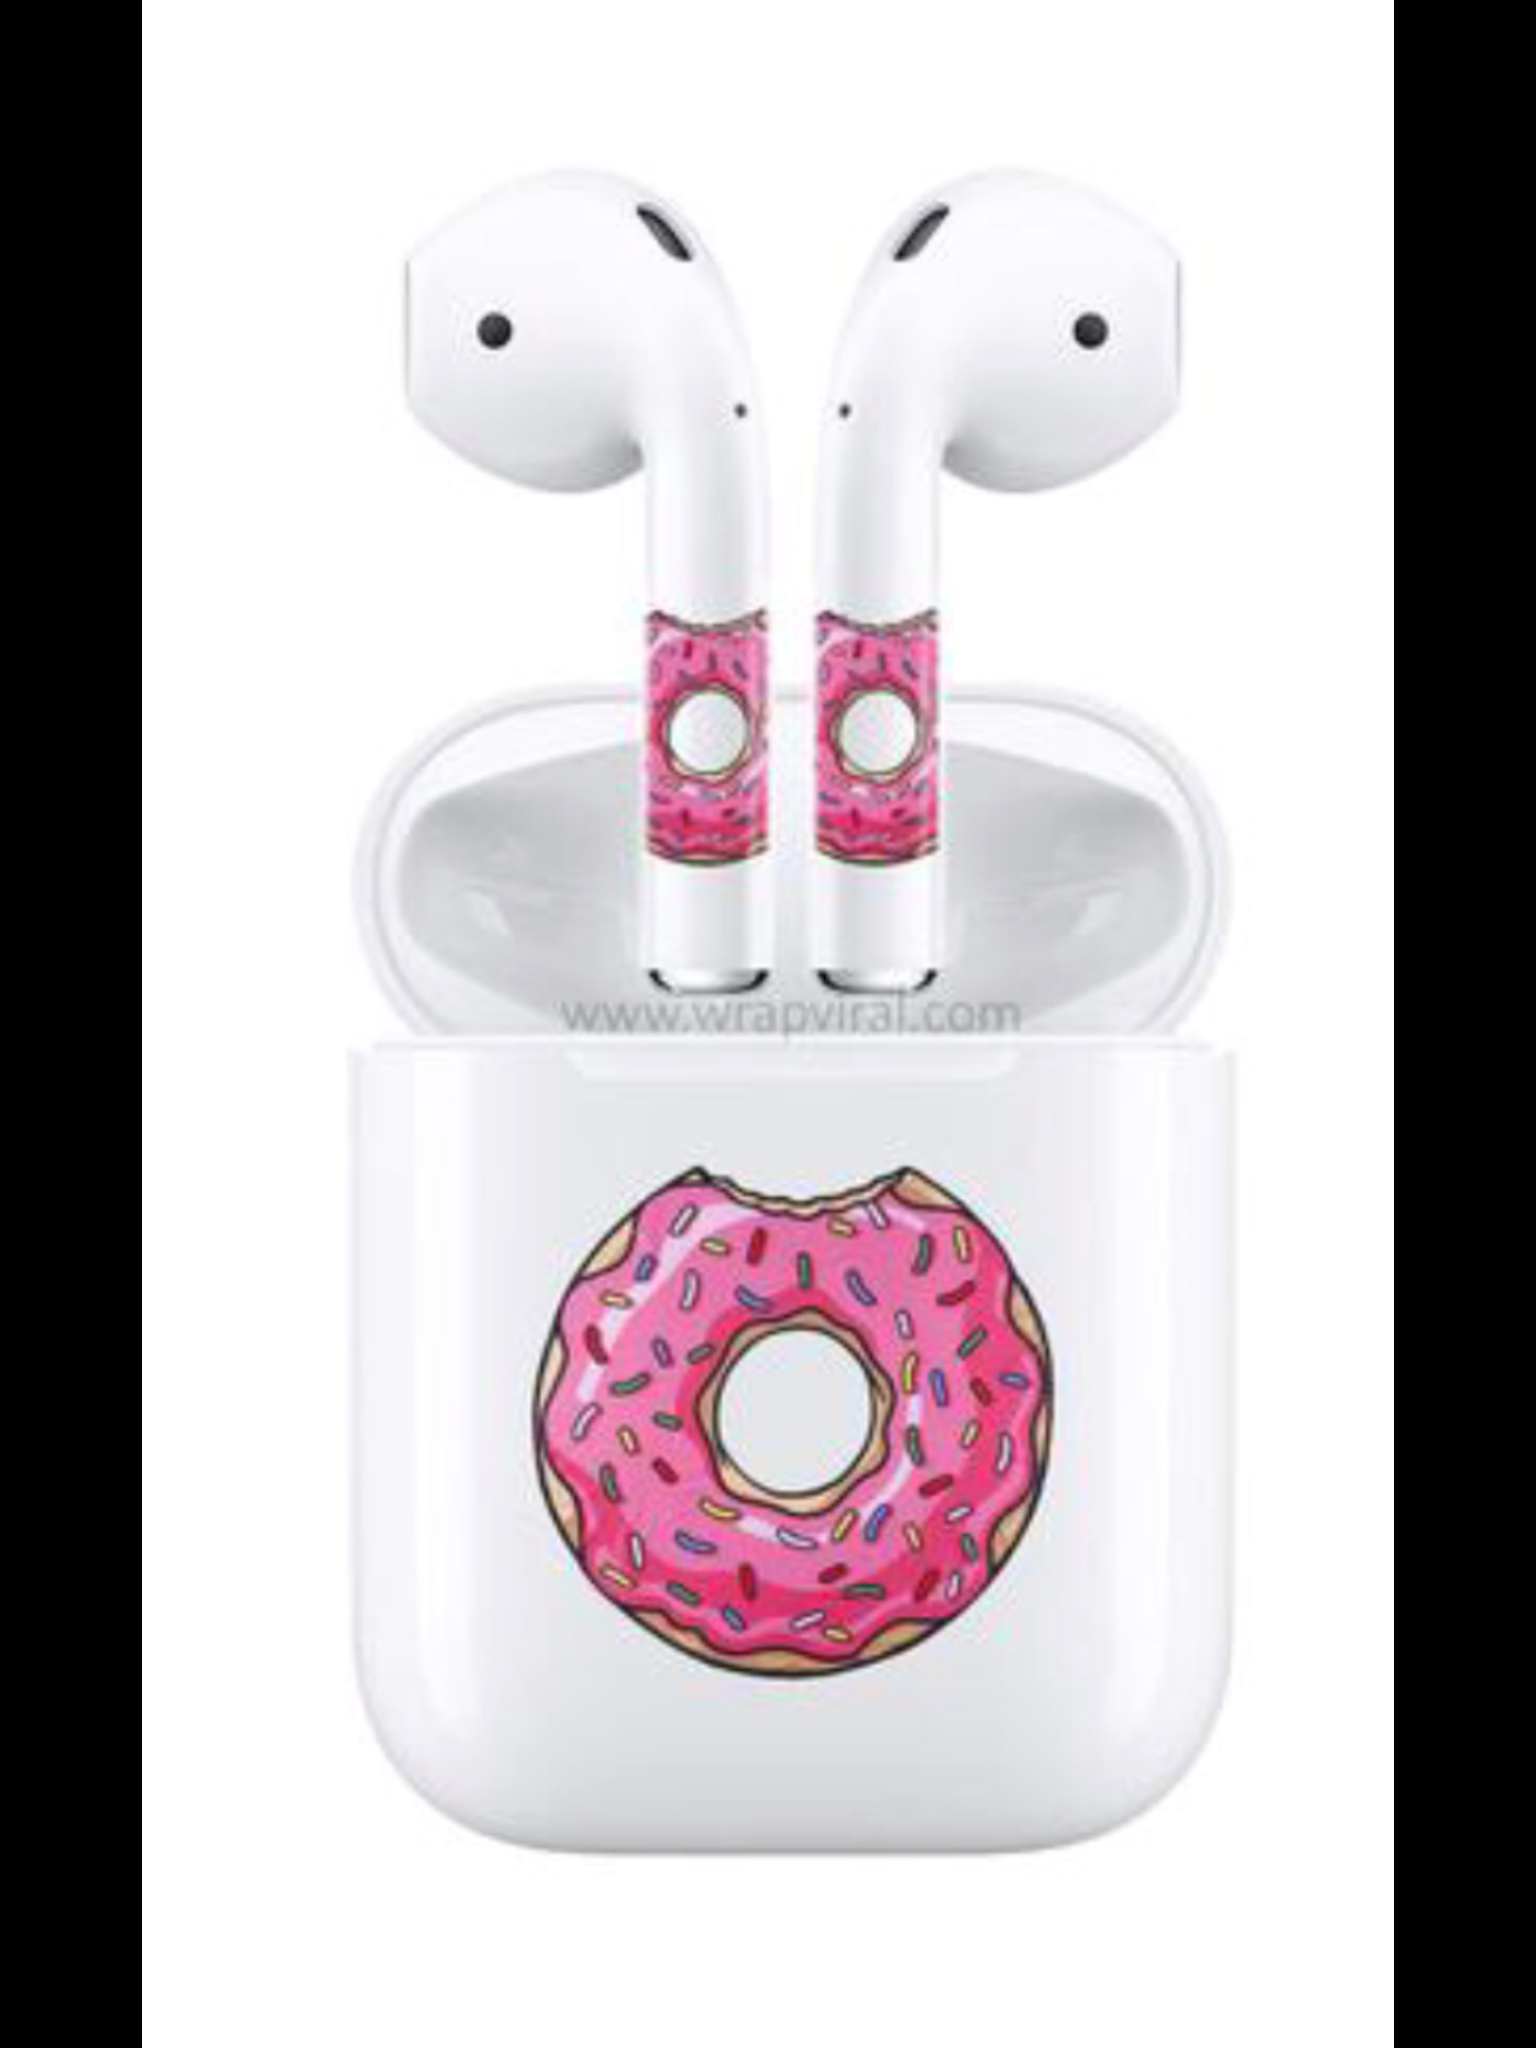 Airpods Apple Headphone Apple Accessories Iphone Accessories